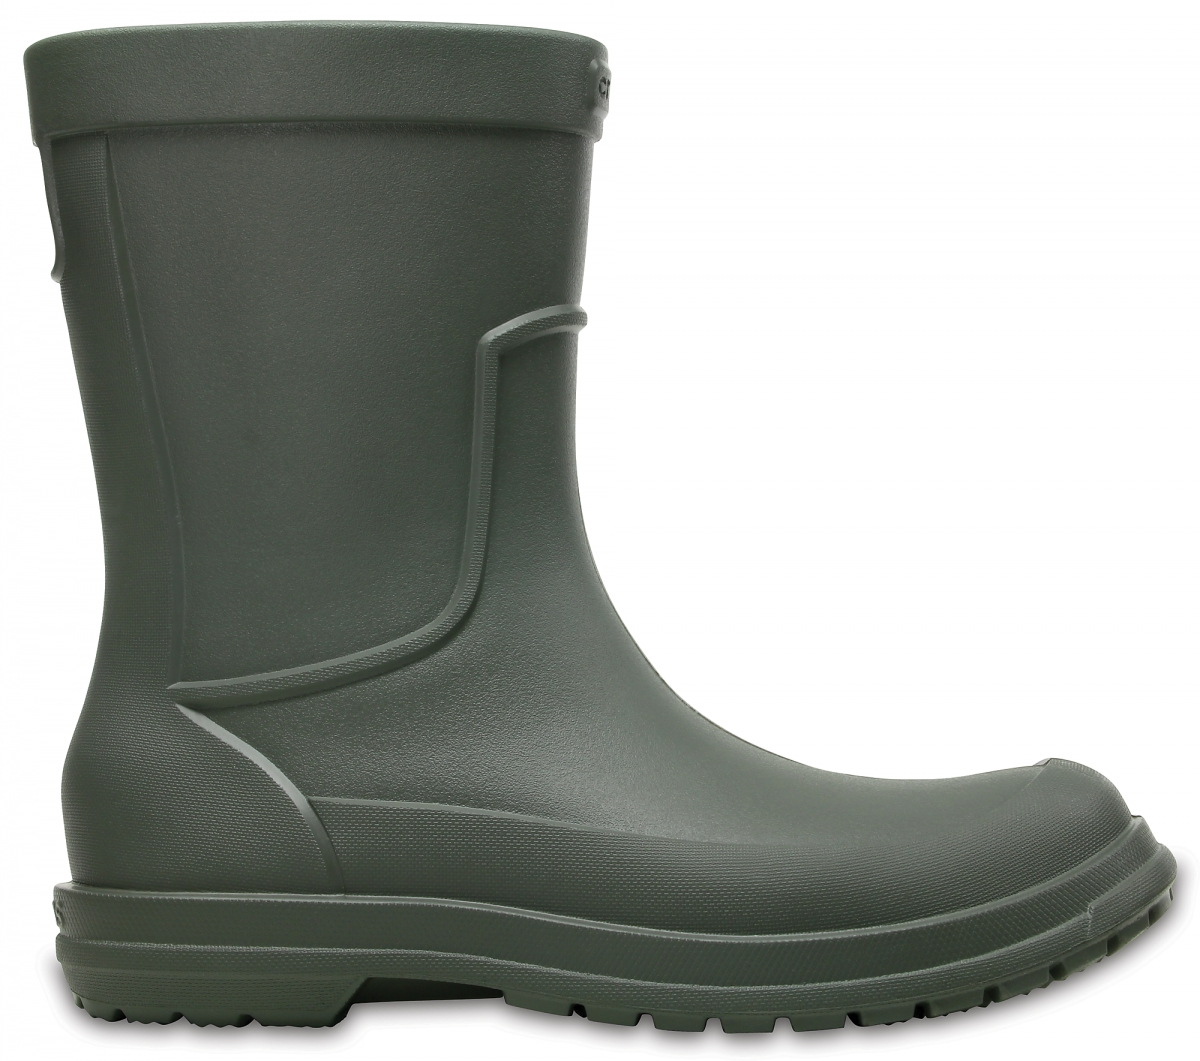 Crocs AllCast Rain Boot Men - Dusty Olive, M11 (45-46)